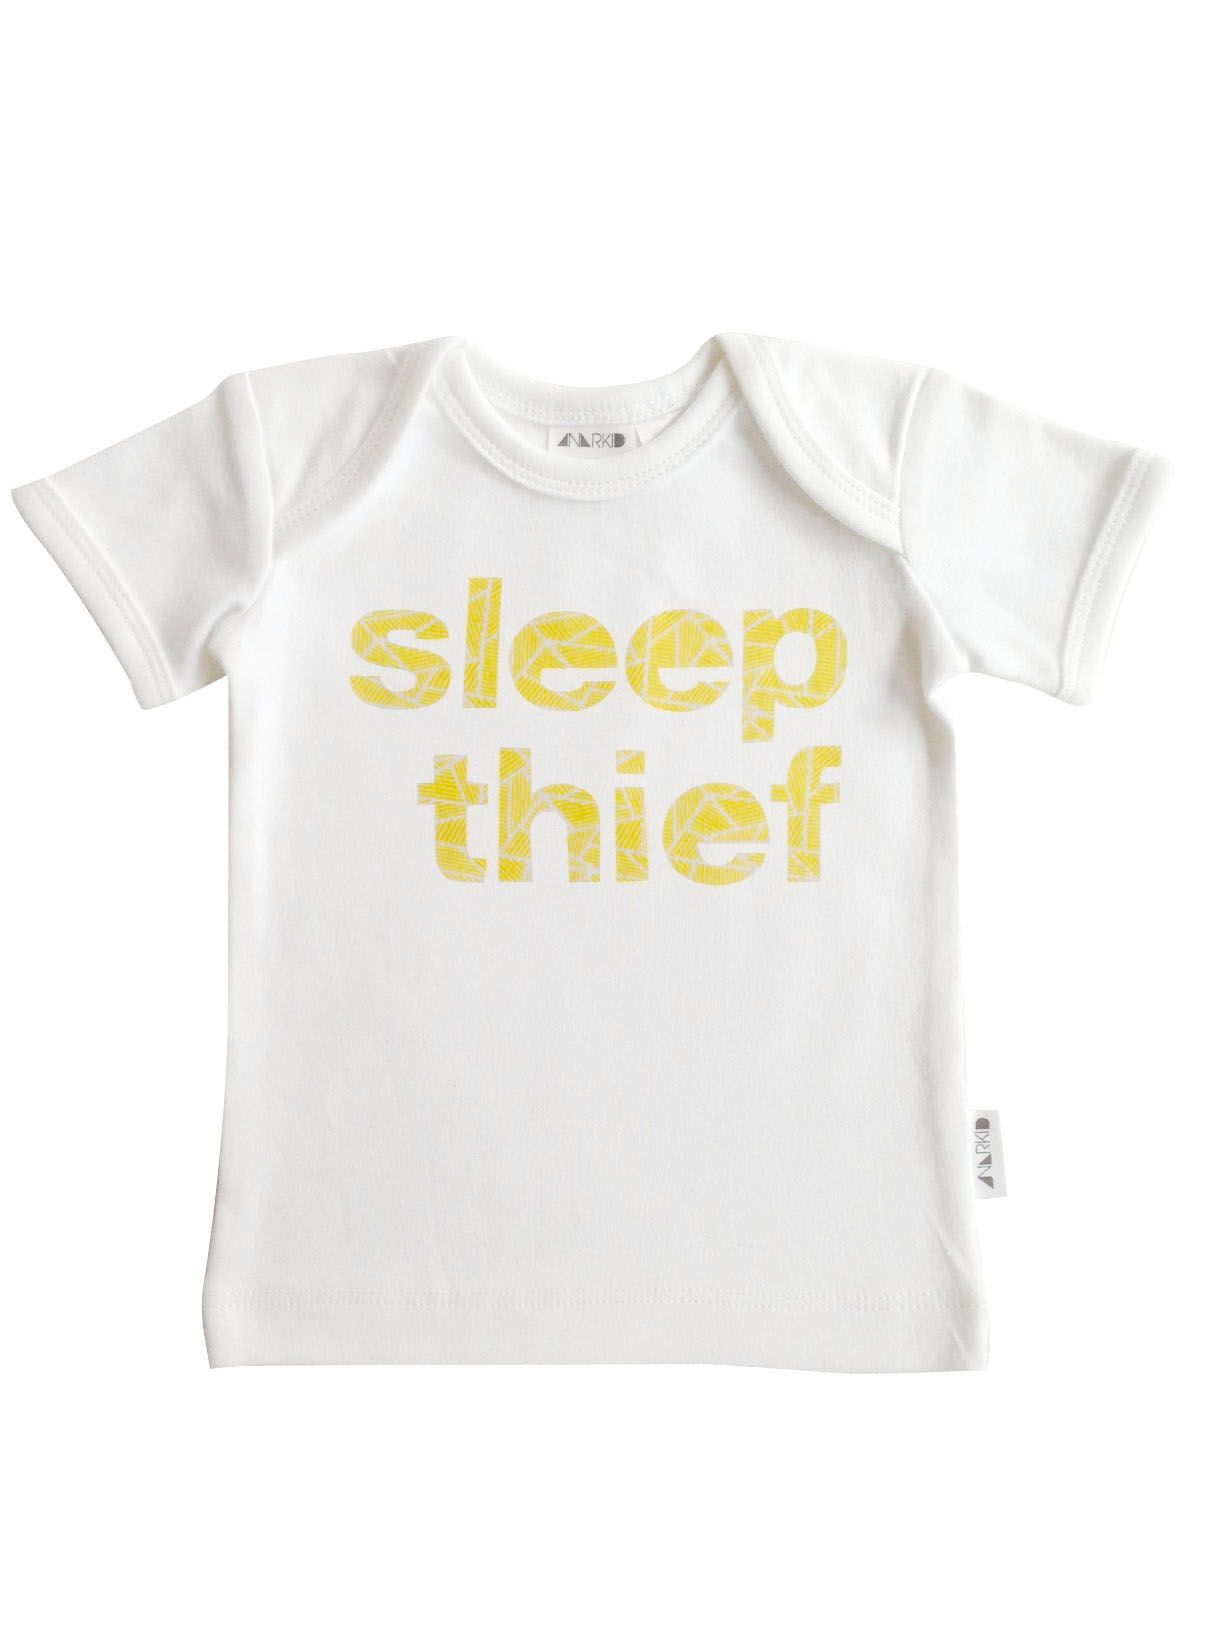 Little Boo Teek Unisex Baby Clothing Shop Baby Clothes Online